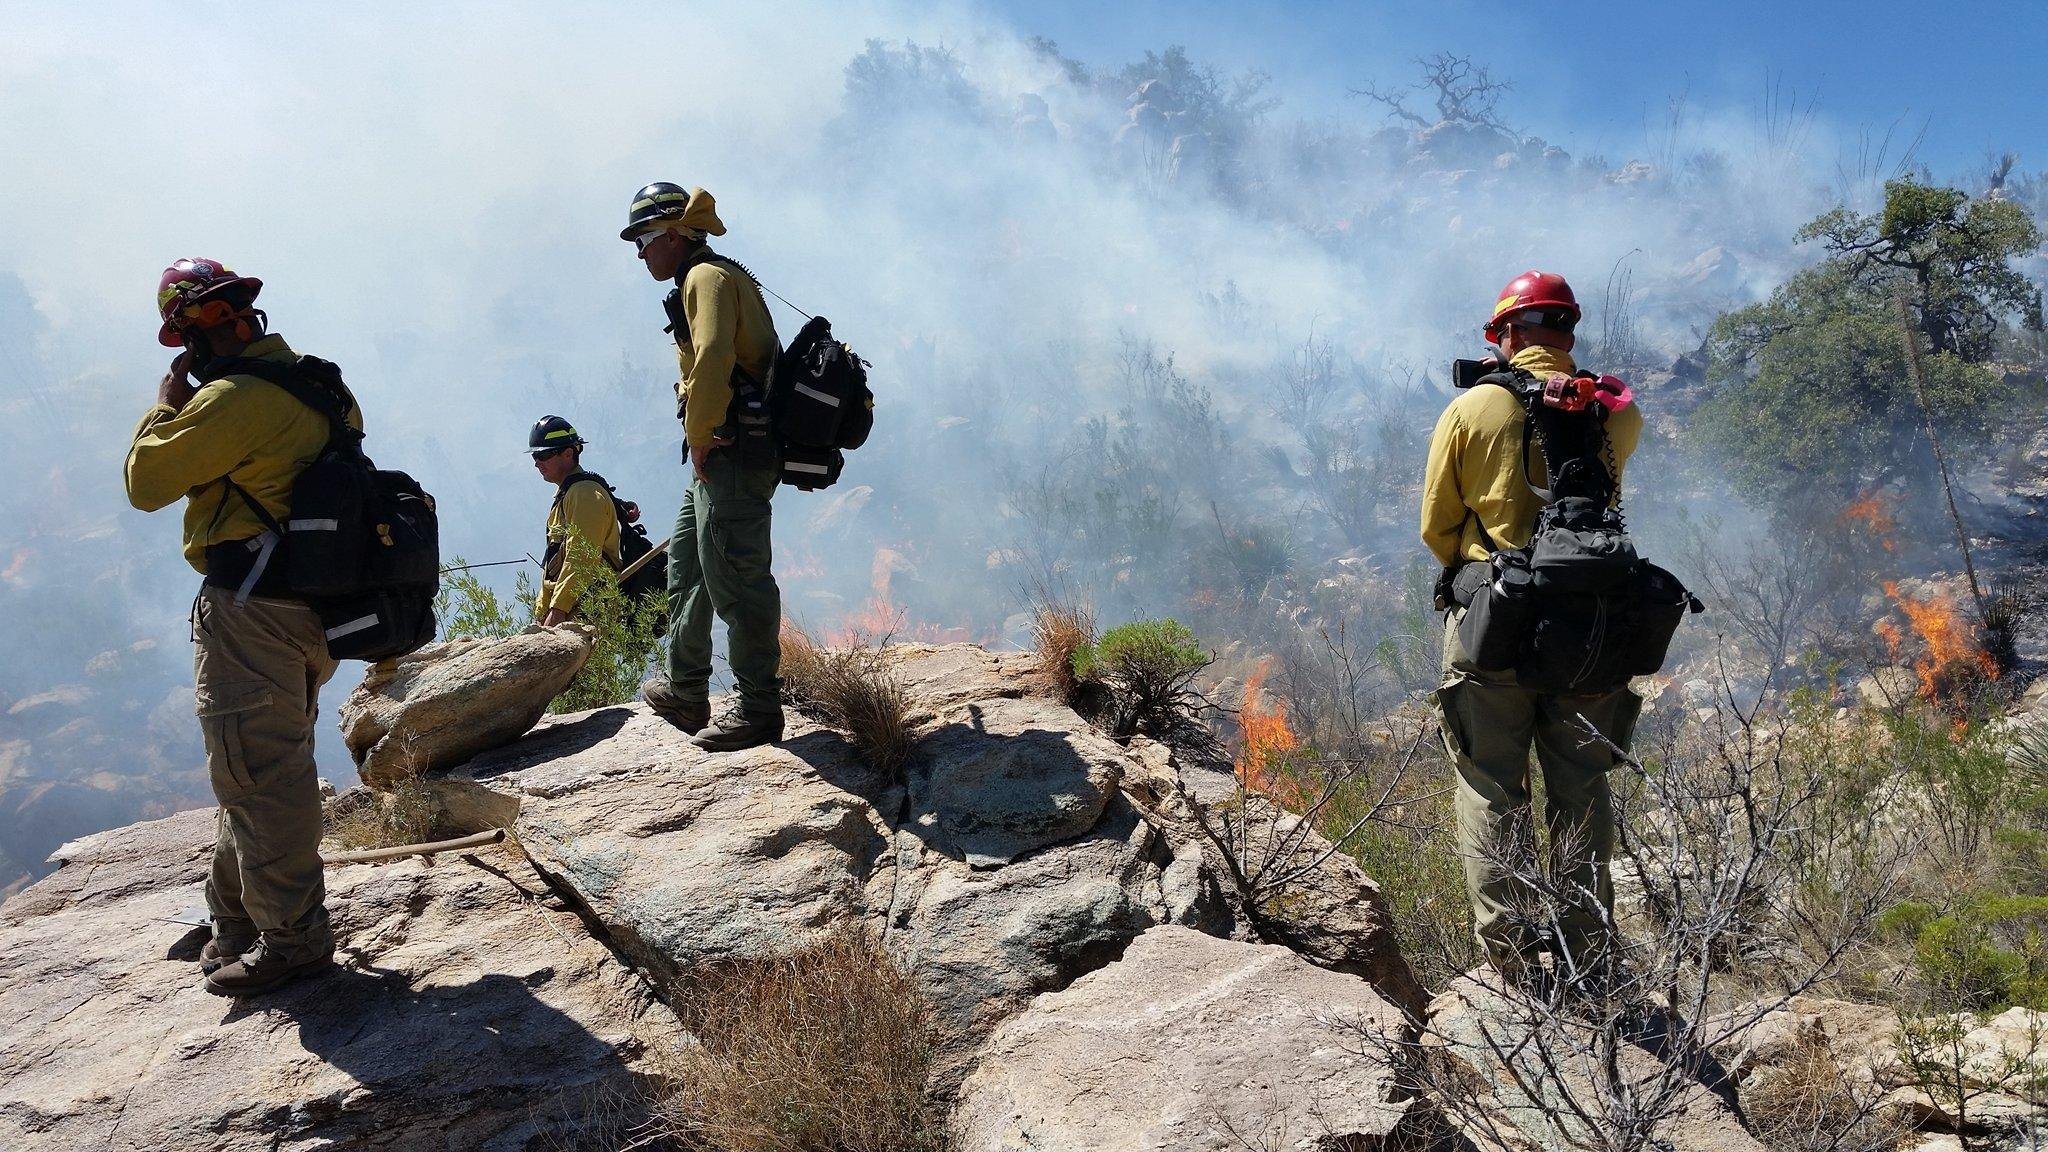 Inmates released from prison will be able to apply for a job with an all new hot shot crew. (Source: Arizona Department of Forestry and Fire Management)